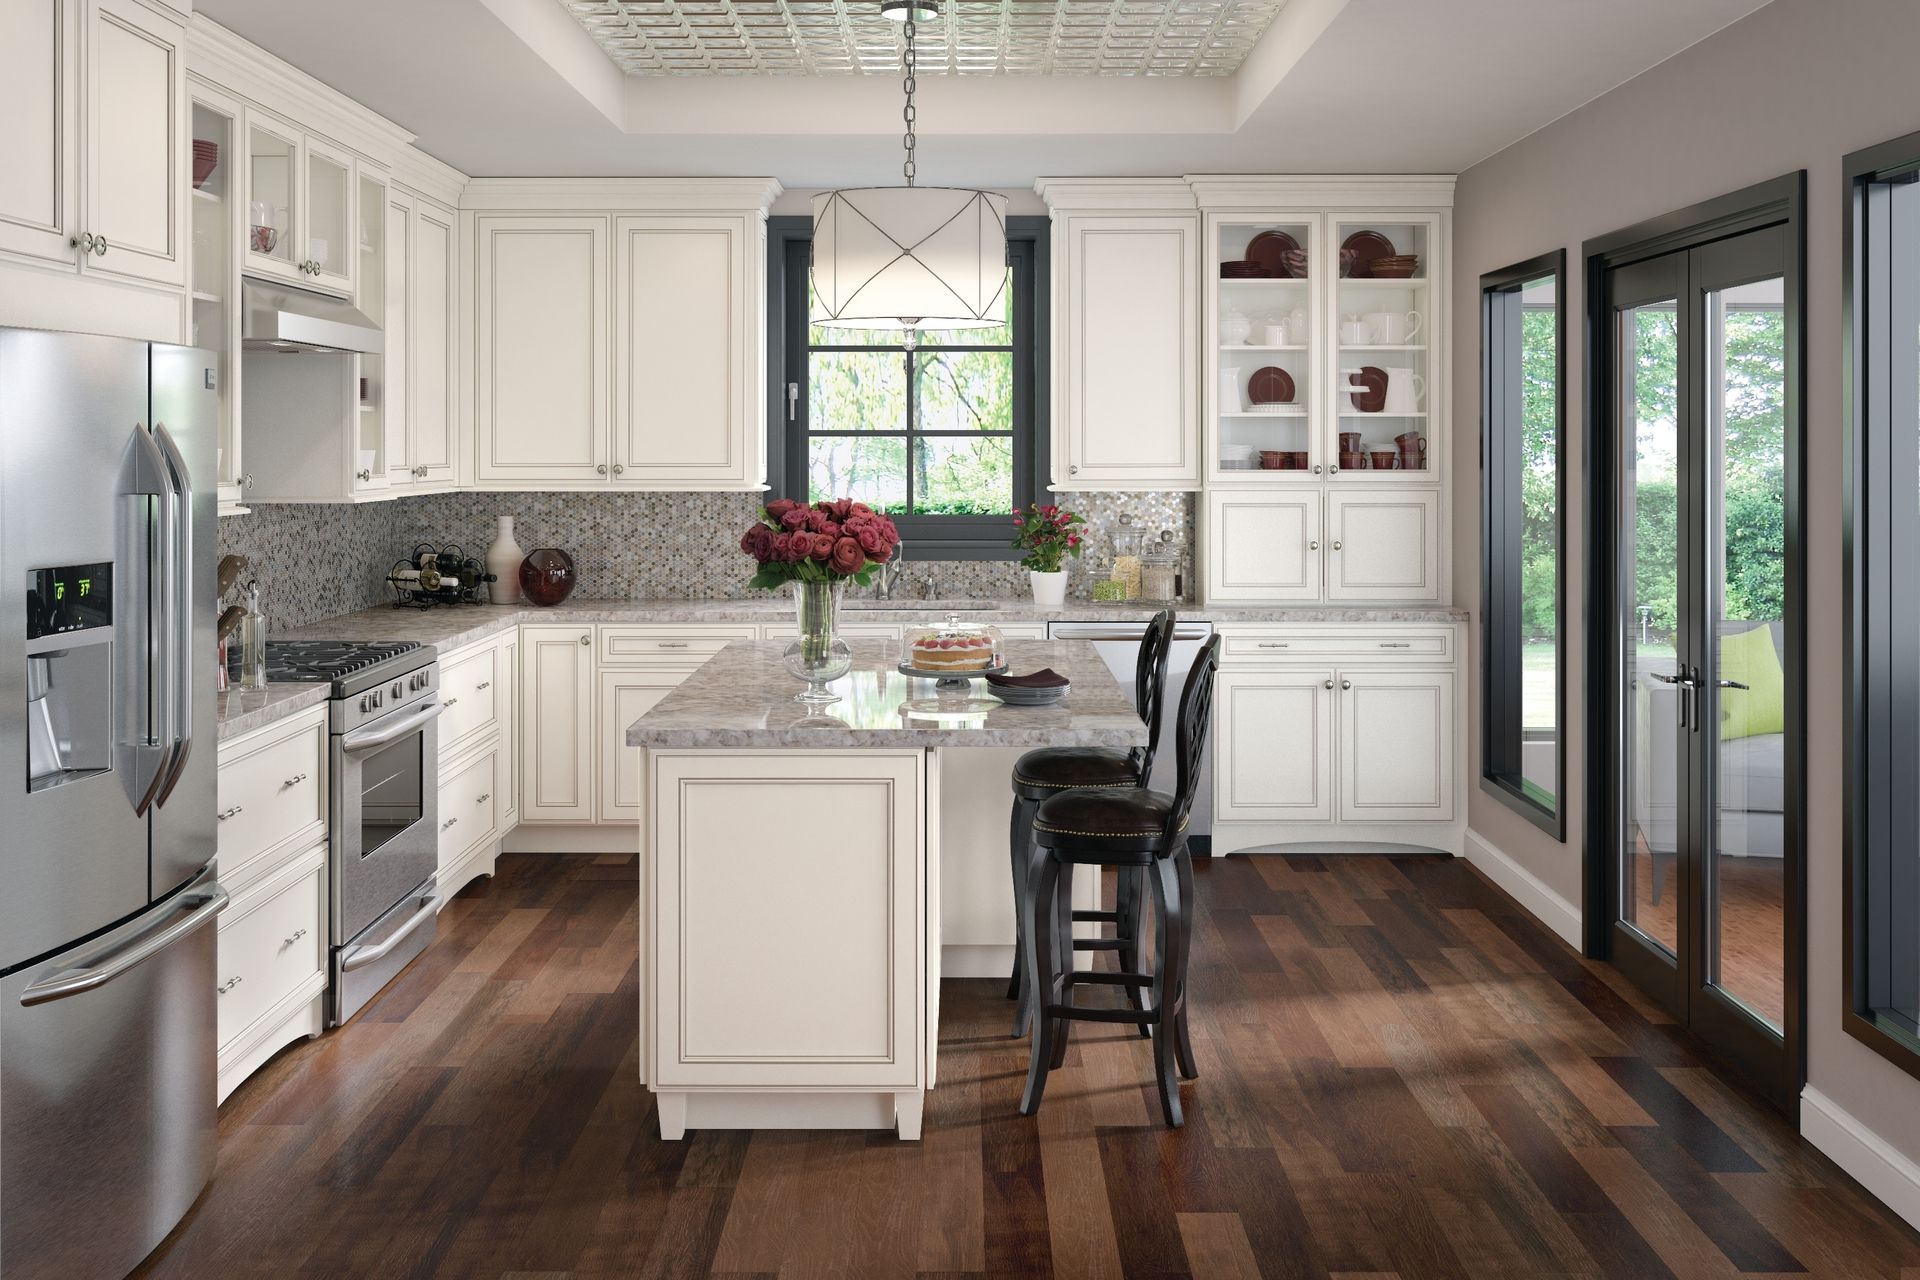 Cardell Kitchen Cabinets - Hannaford Maple in Dove White with Cinder ...